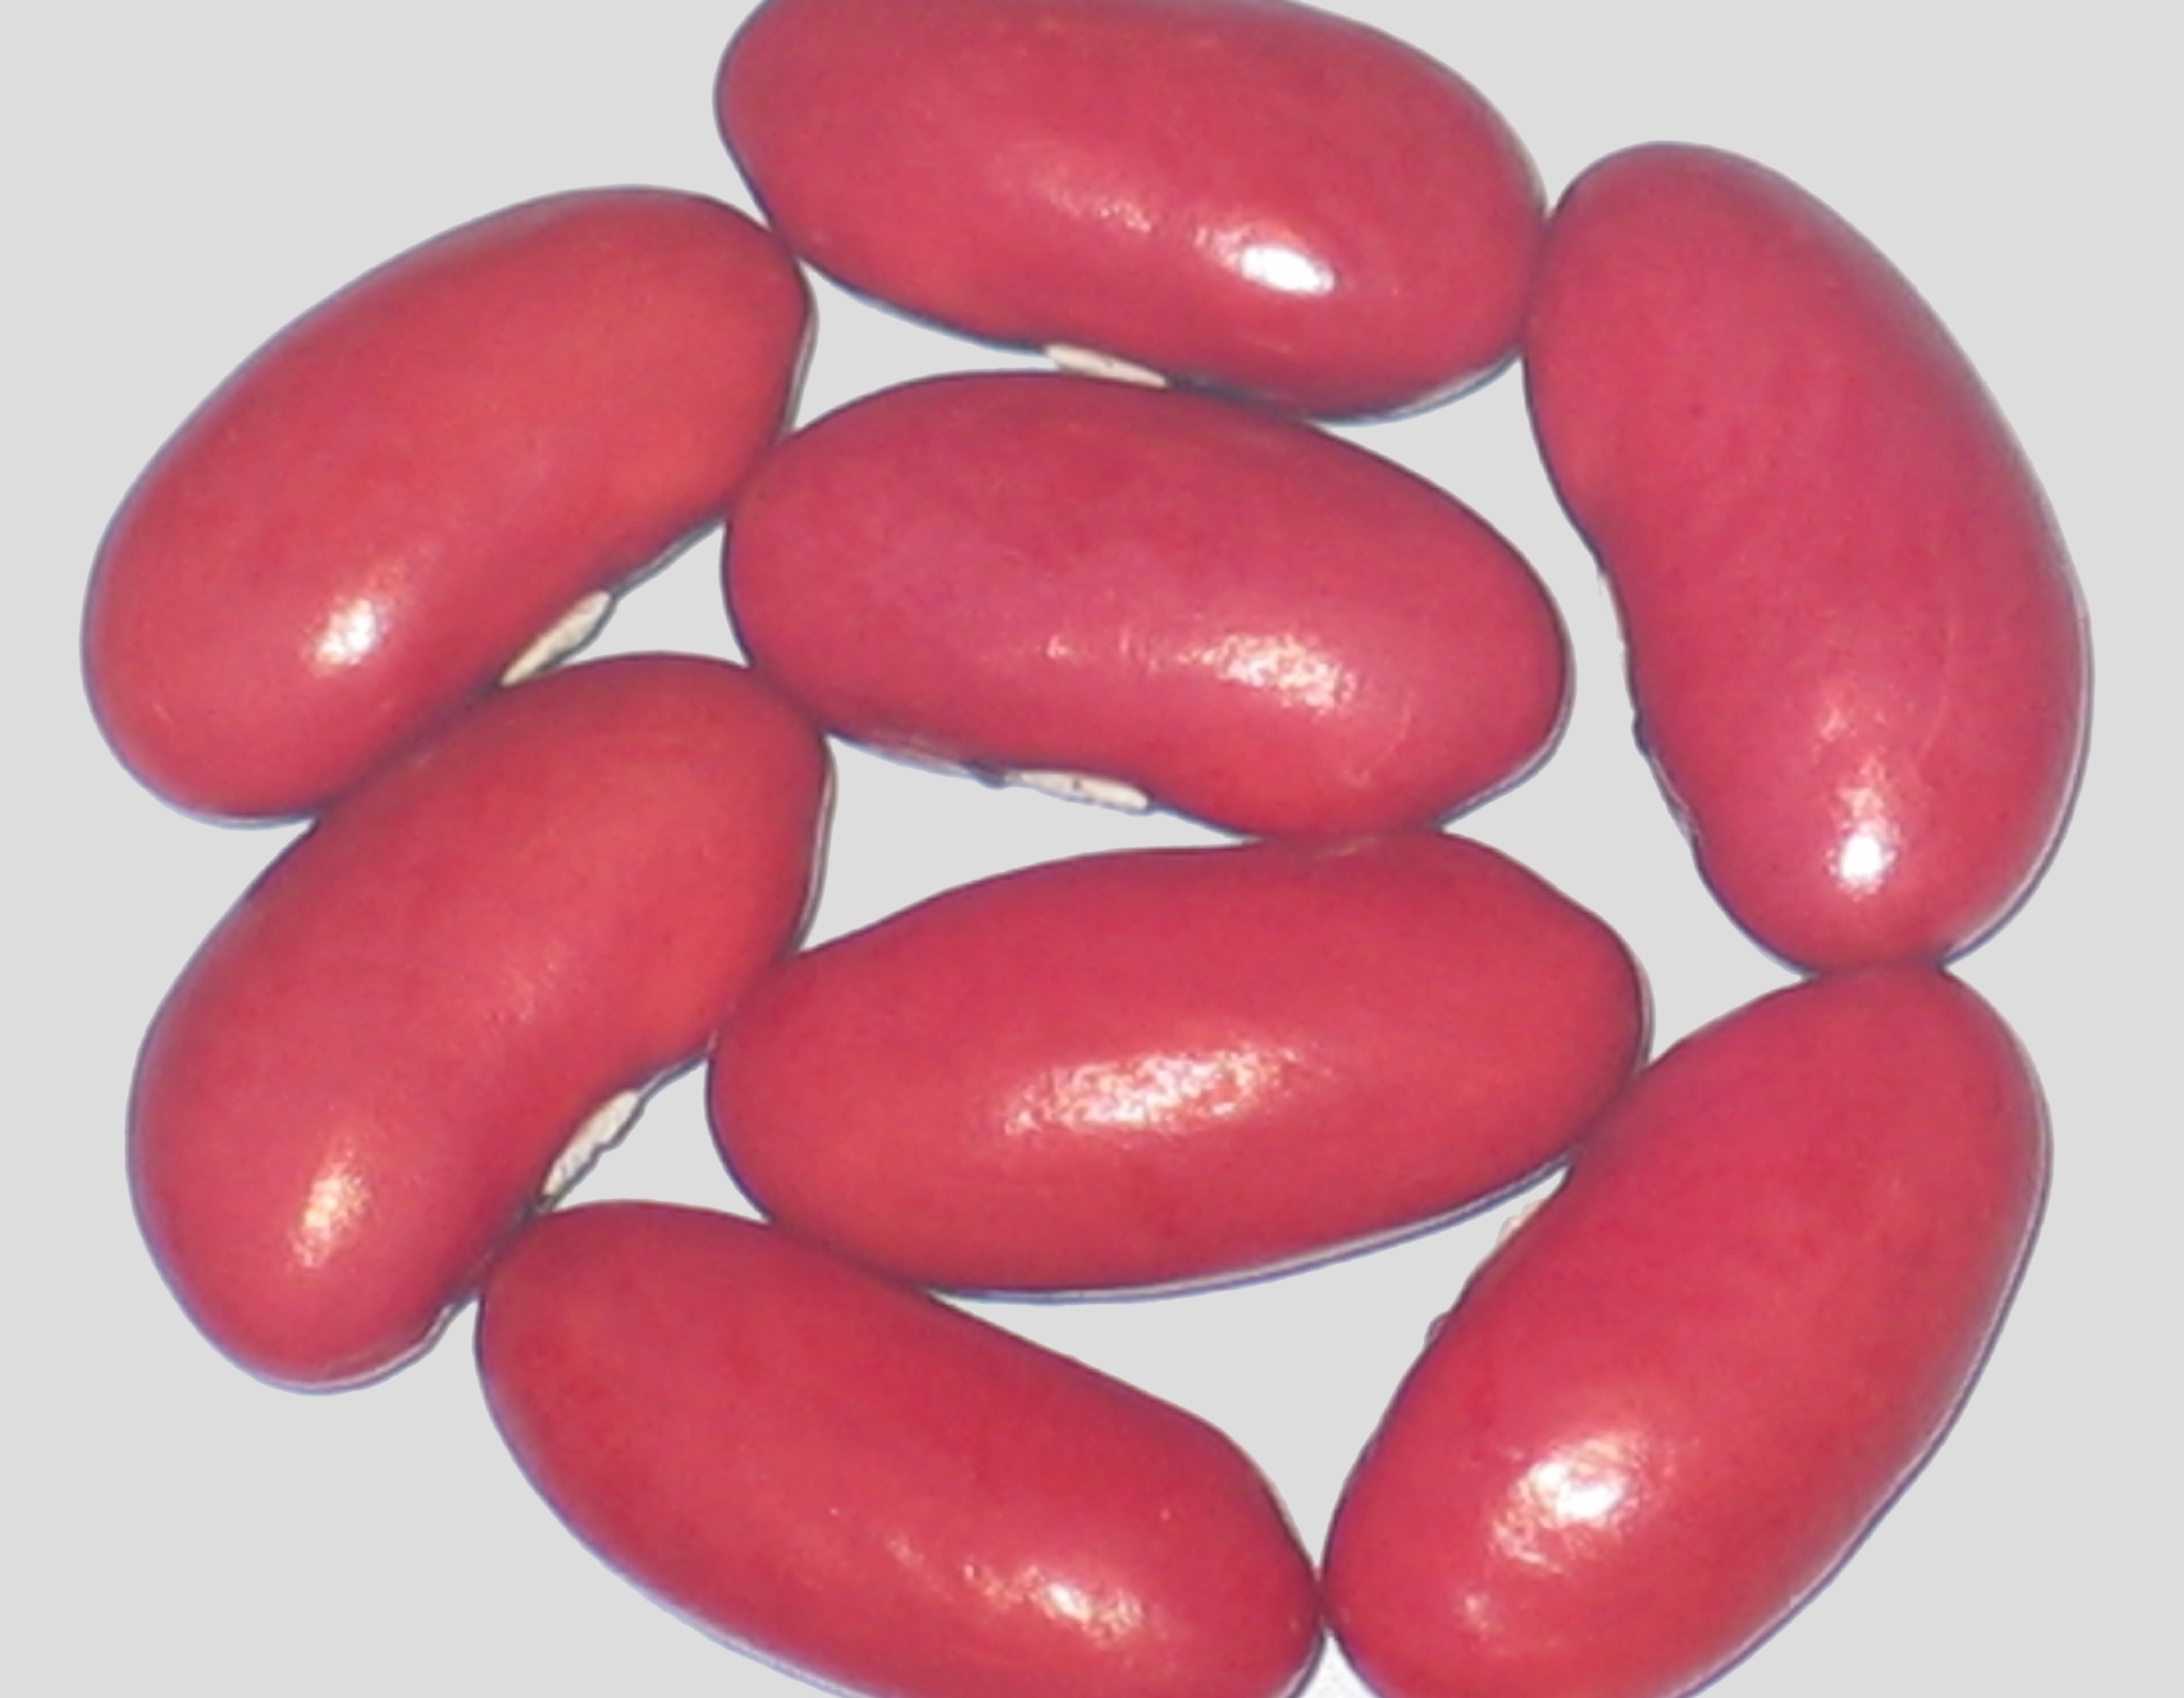 image of Indian beans